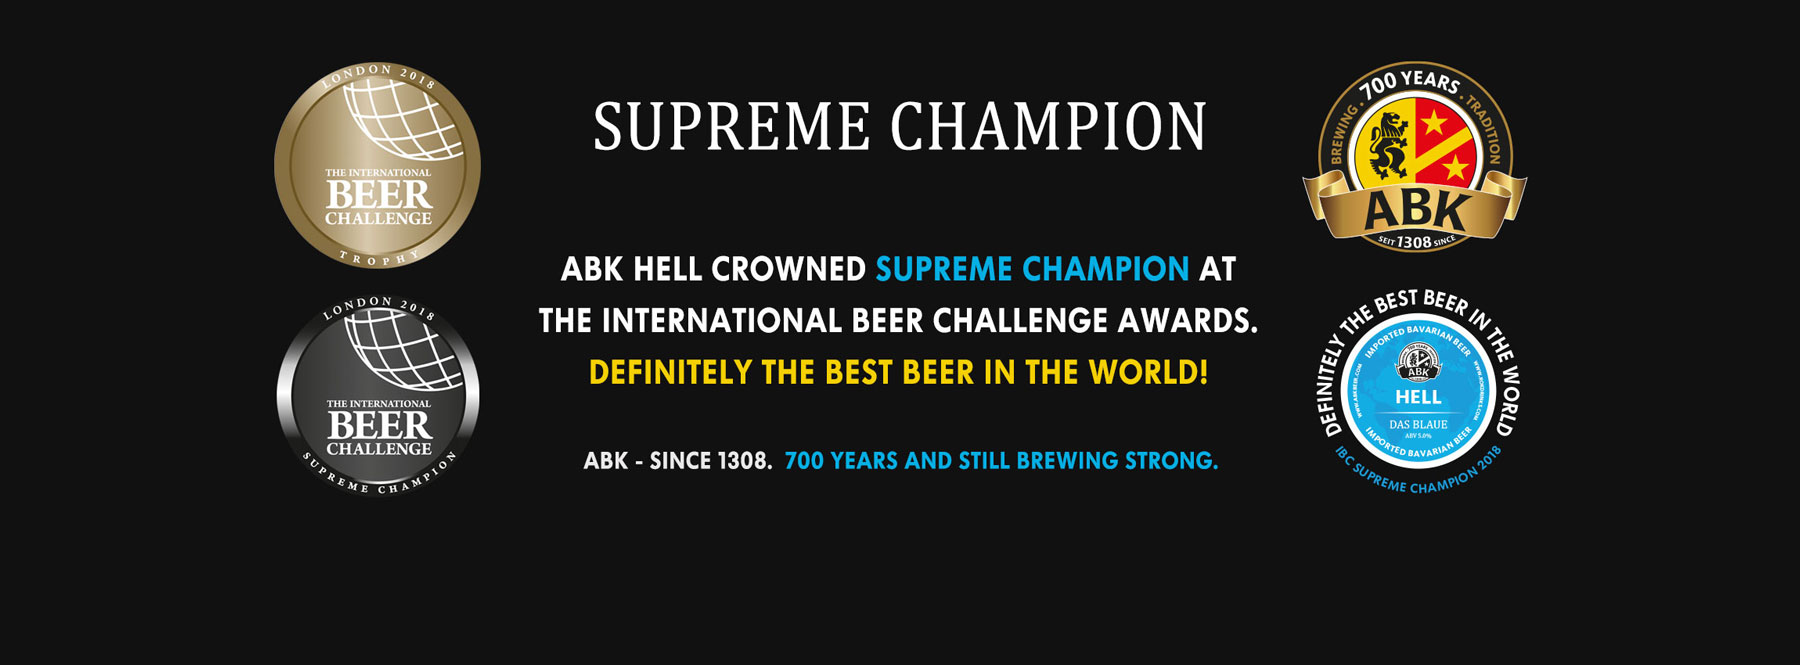 abk-supreme-champion